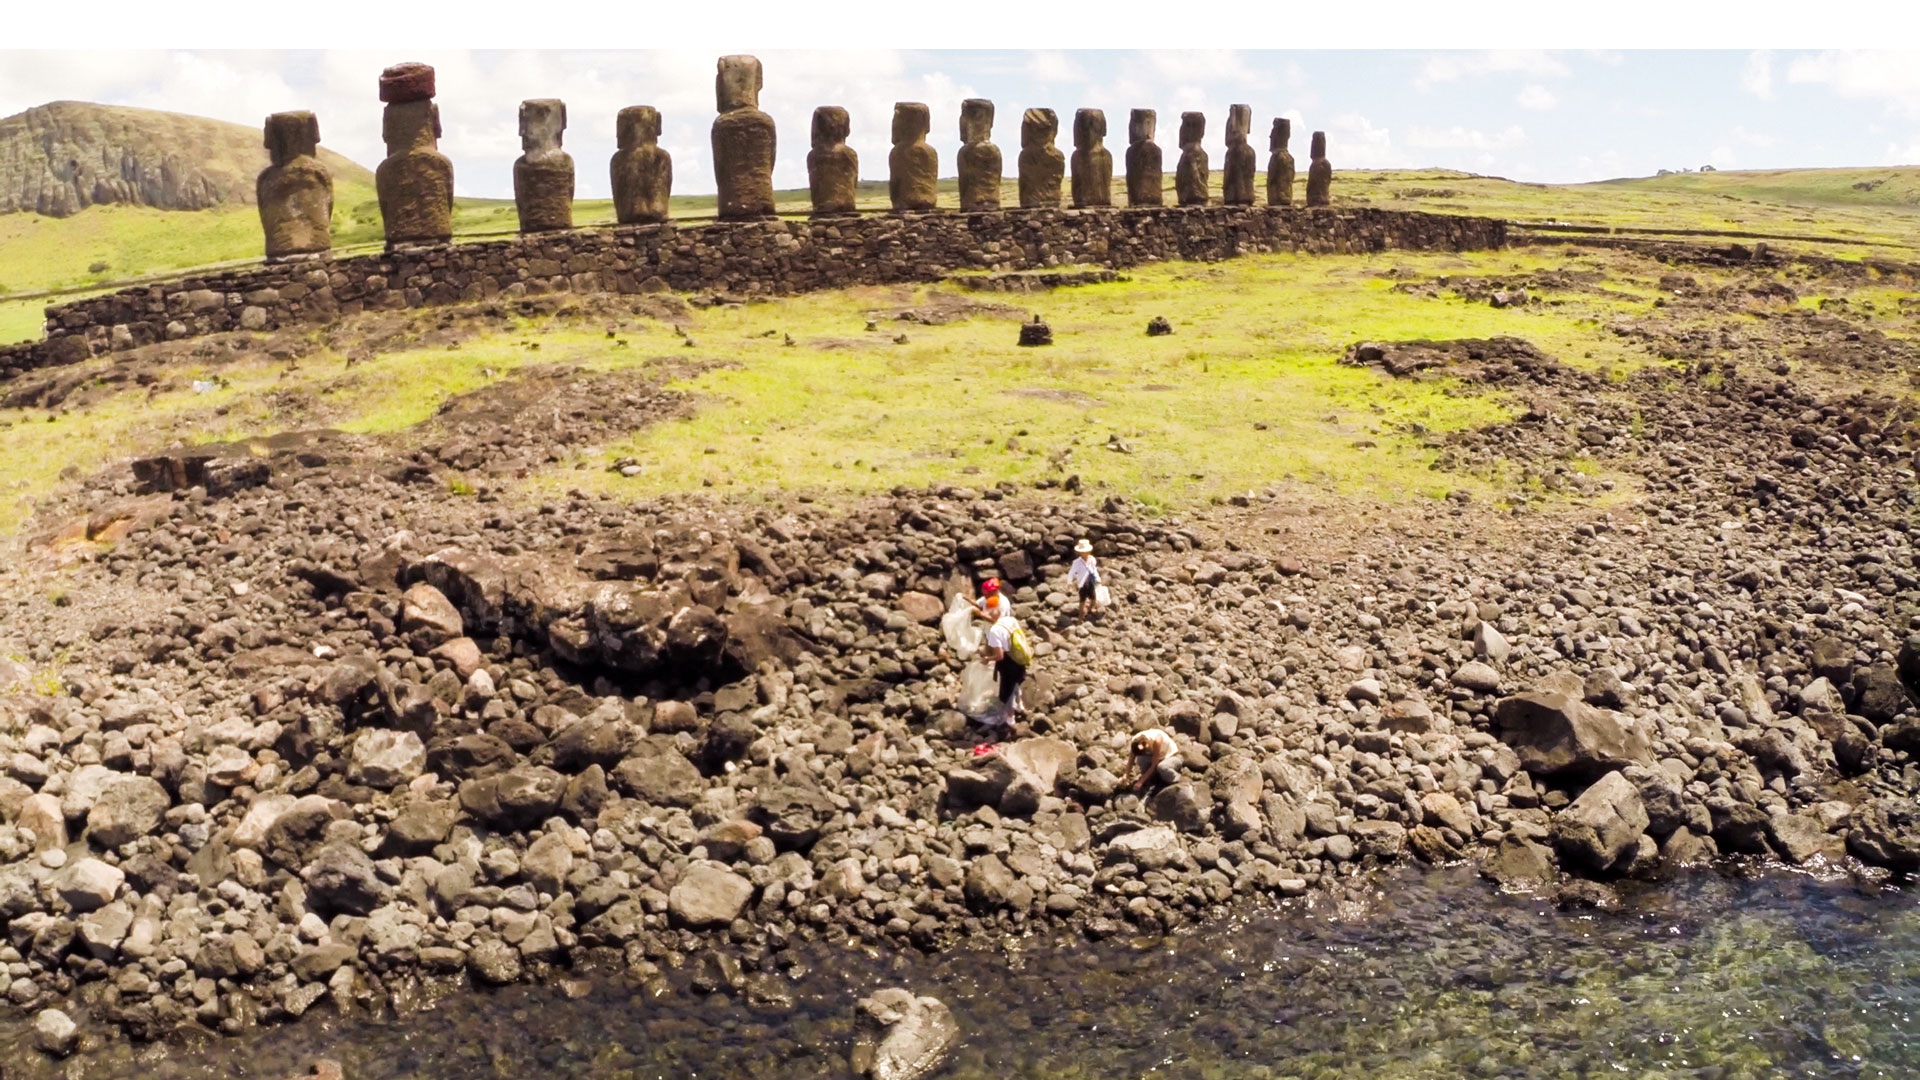 Beach cleanup under way on Rapa Nui while the famous statues loom in background